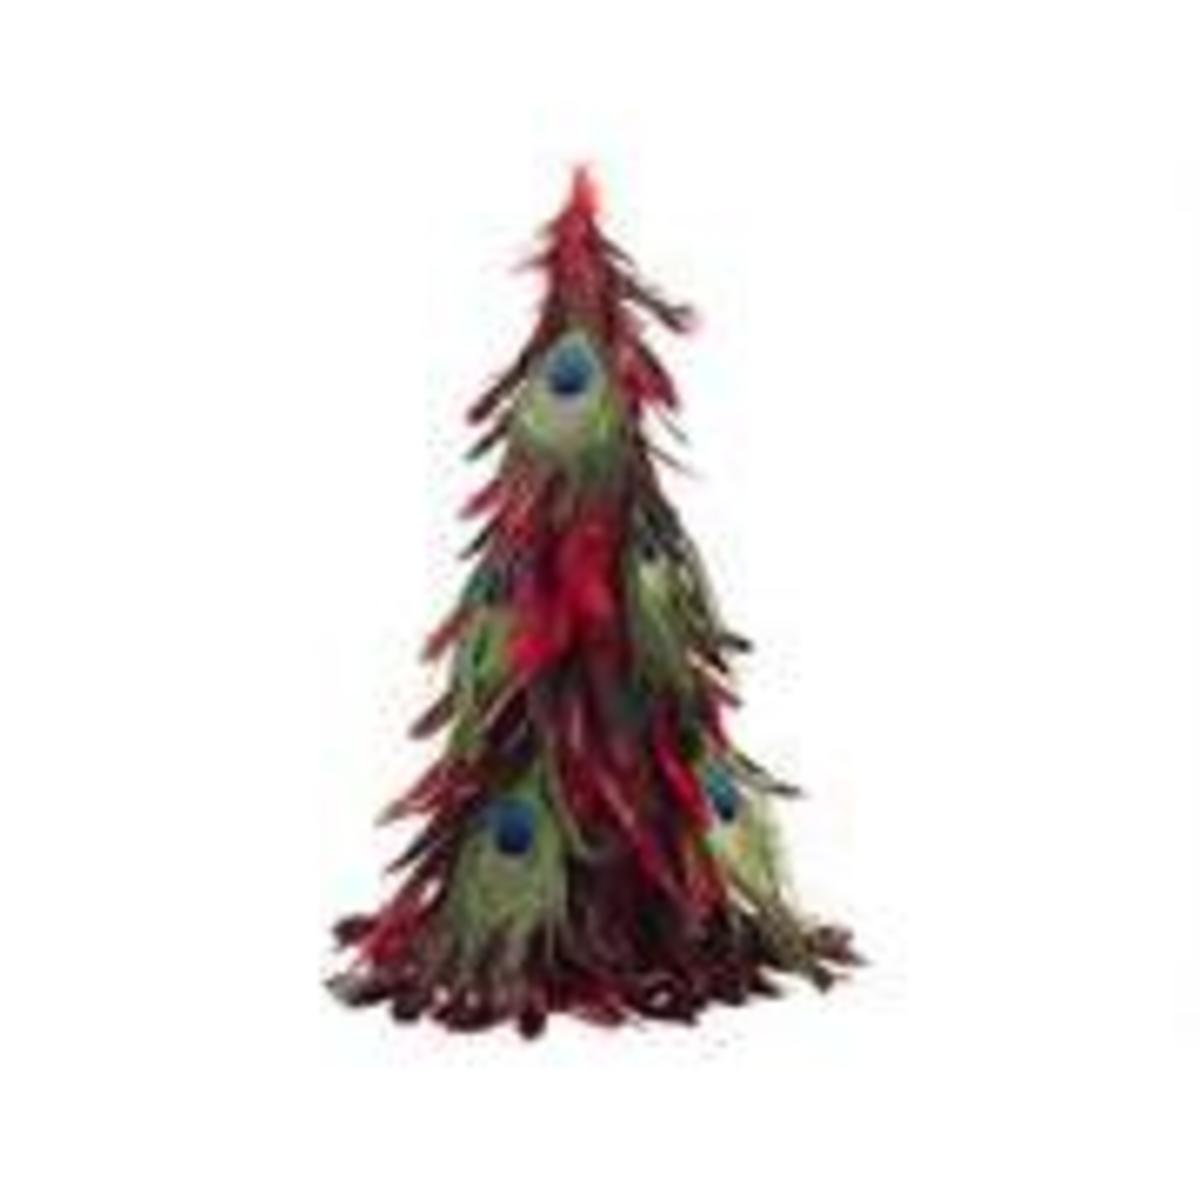 You can make this peacock feather tree for less than $8.00. Retails for $35.00 at Amazon.